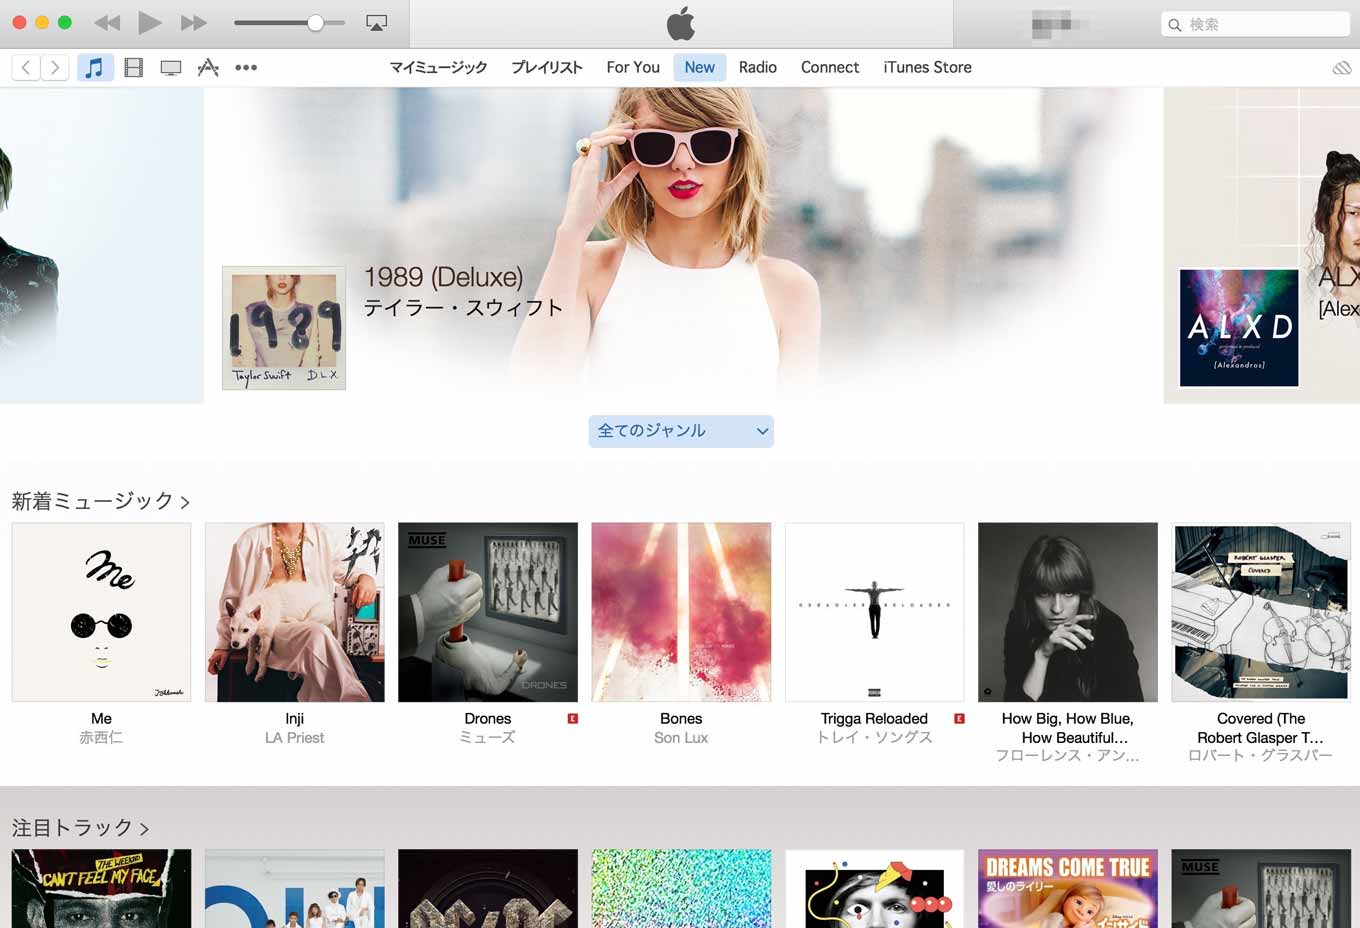 Apple、Apple Musicに対応した「iTunes 12.2」リリース - MacとWindowsで「Apple Music」が利用可能